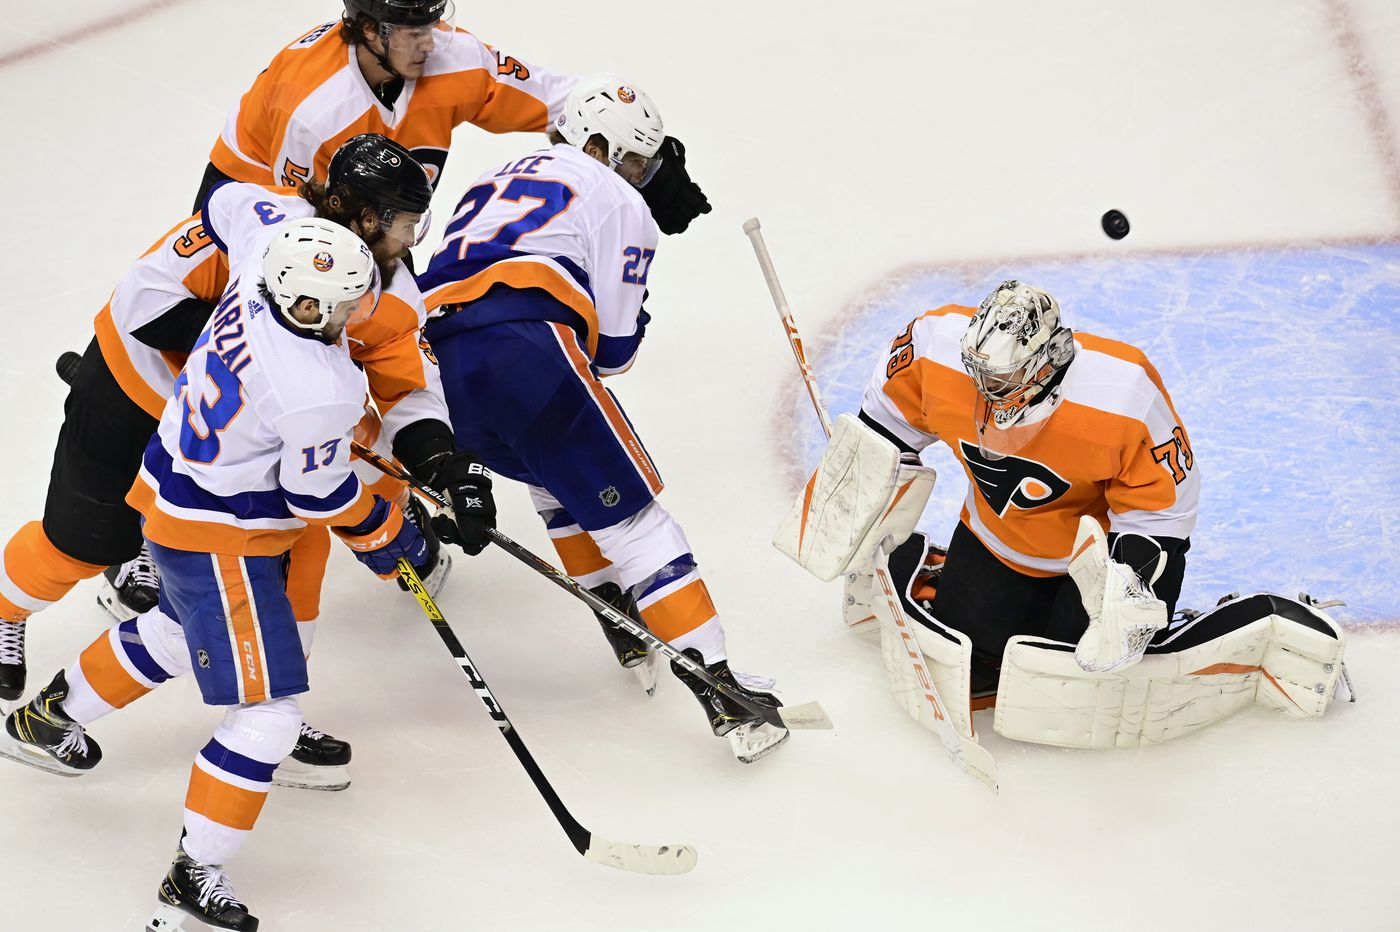 Flyers run out of gas, fall to Islanders, 4-0, and end their season in Game 7